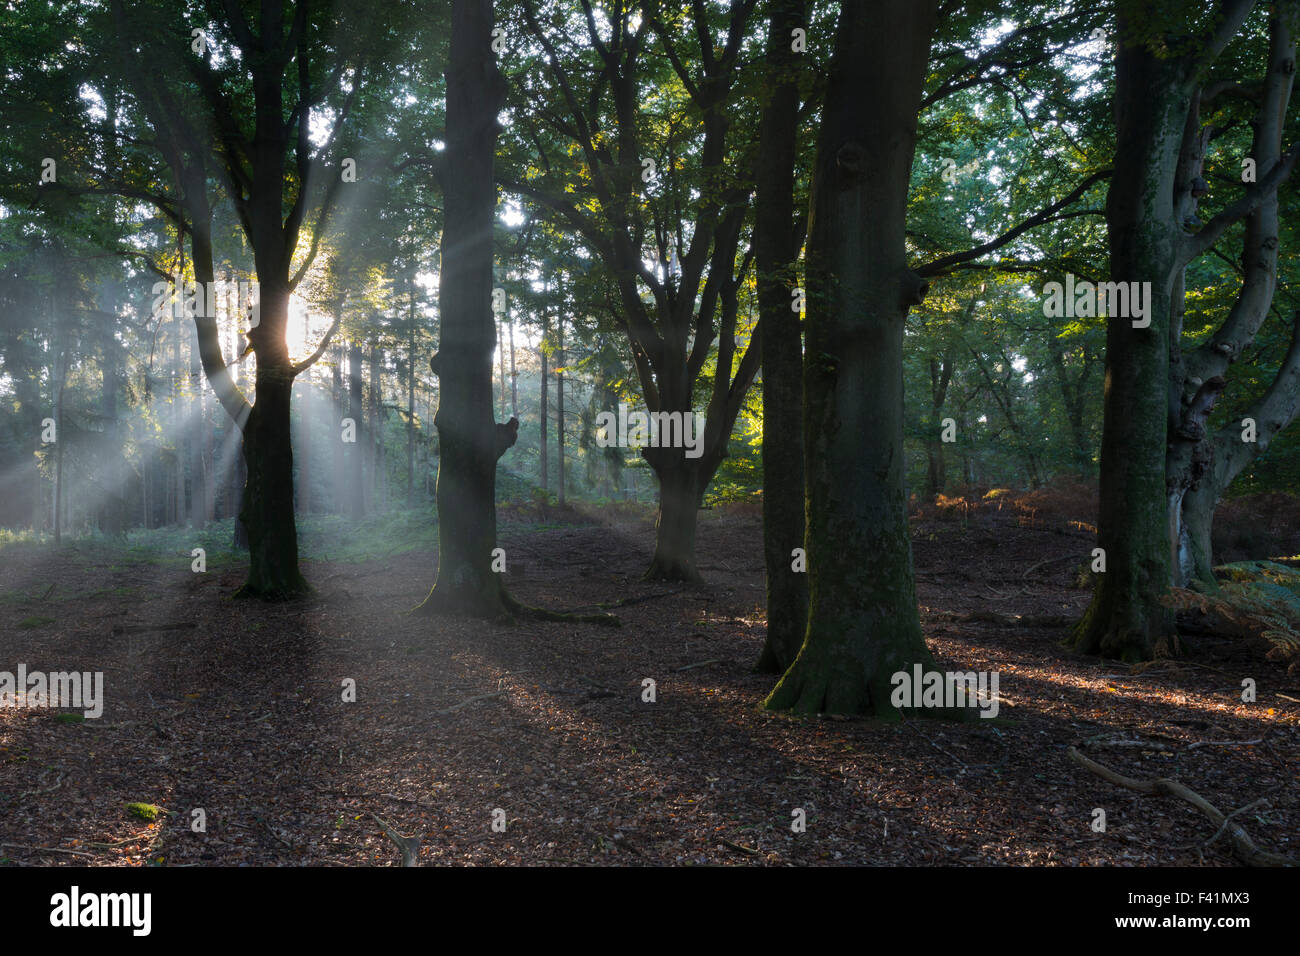 Rays of sunlight in forest, Emsland, Lower Saxony, Germany Stock Photo